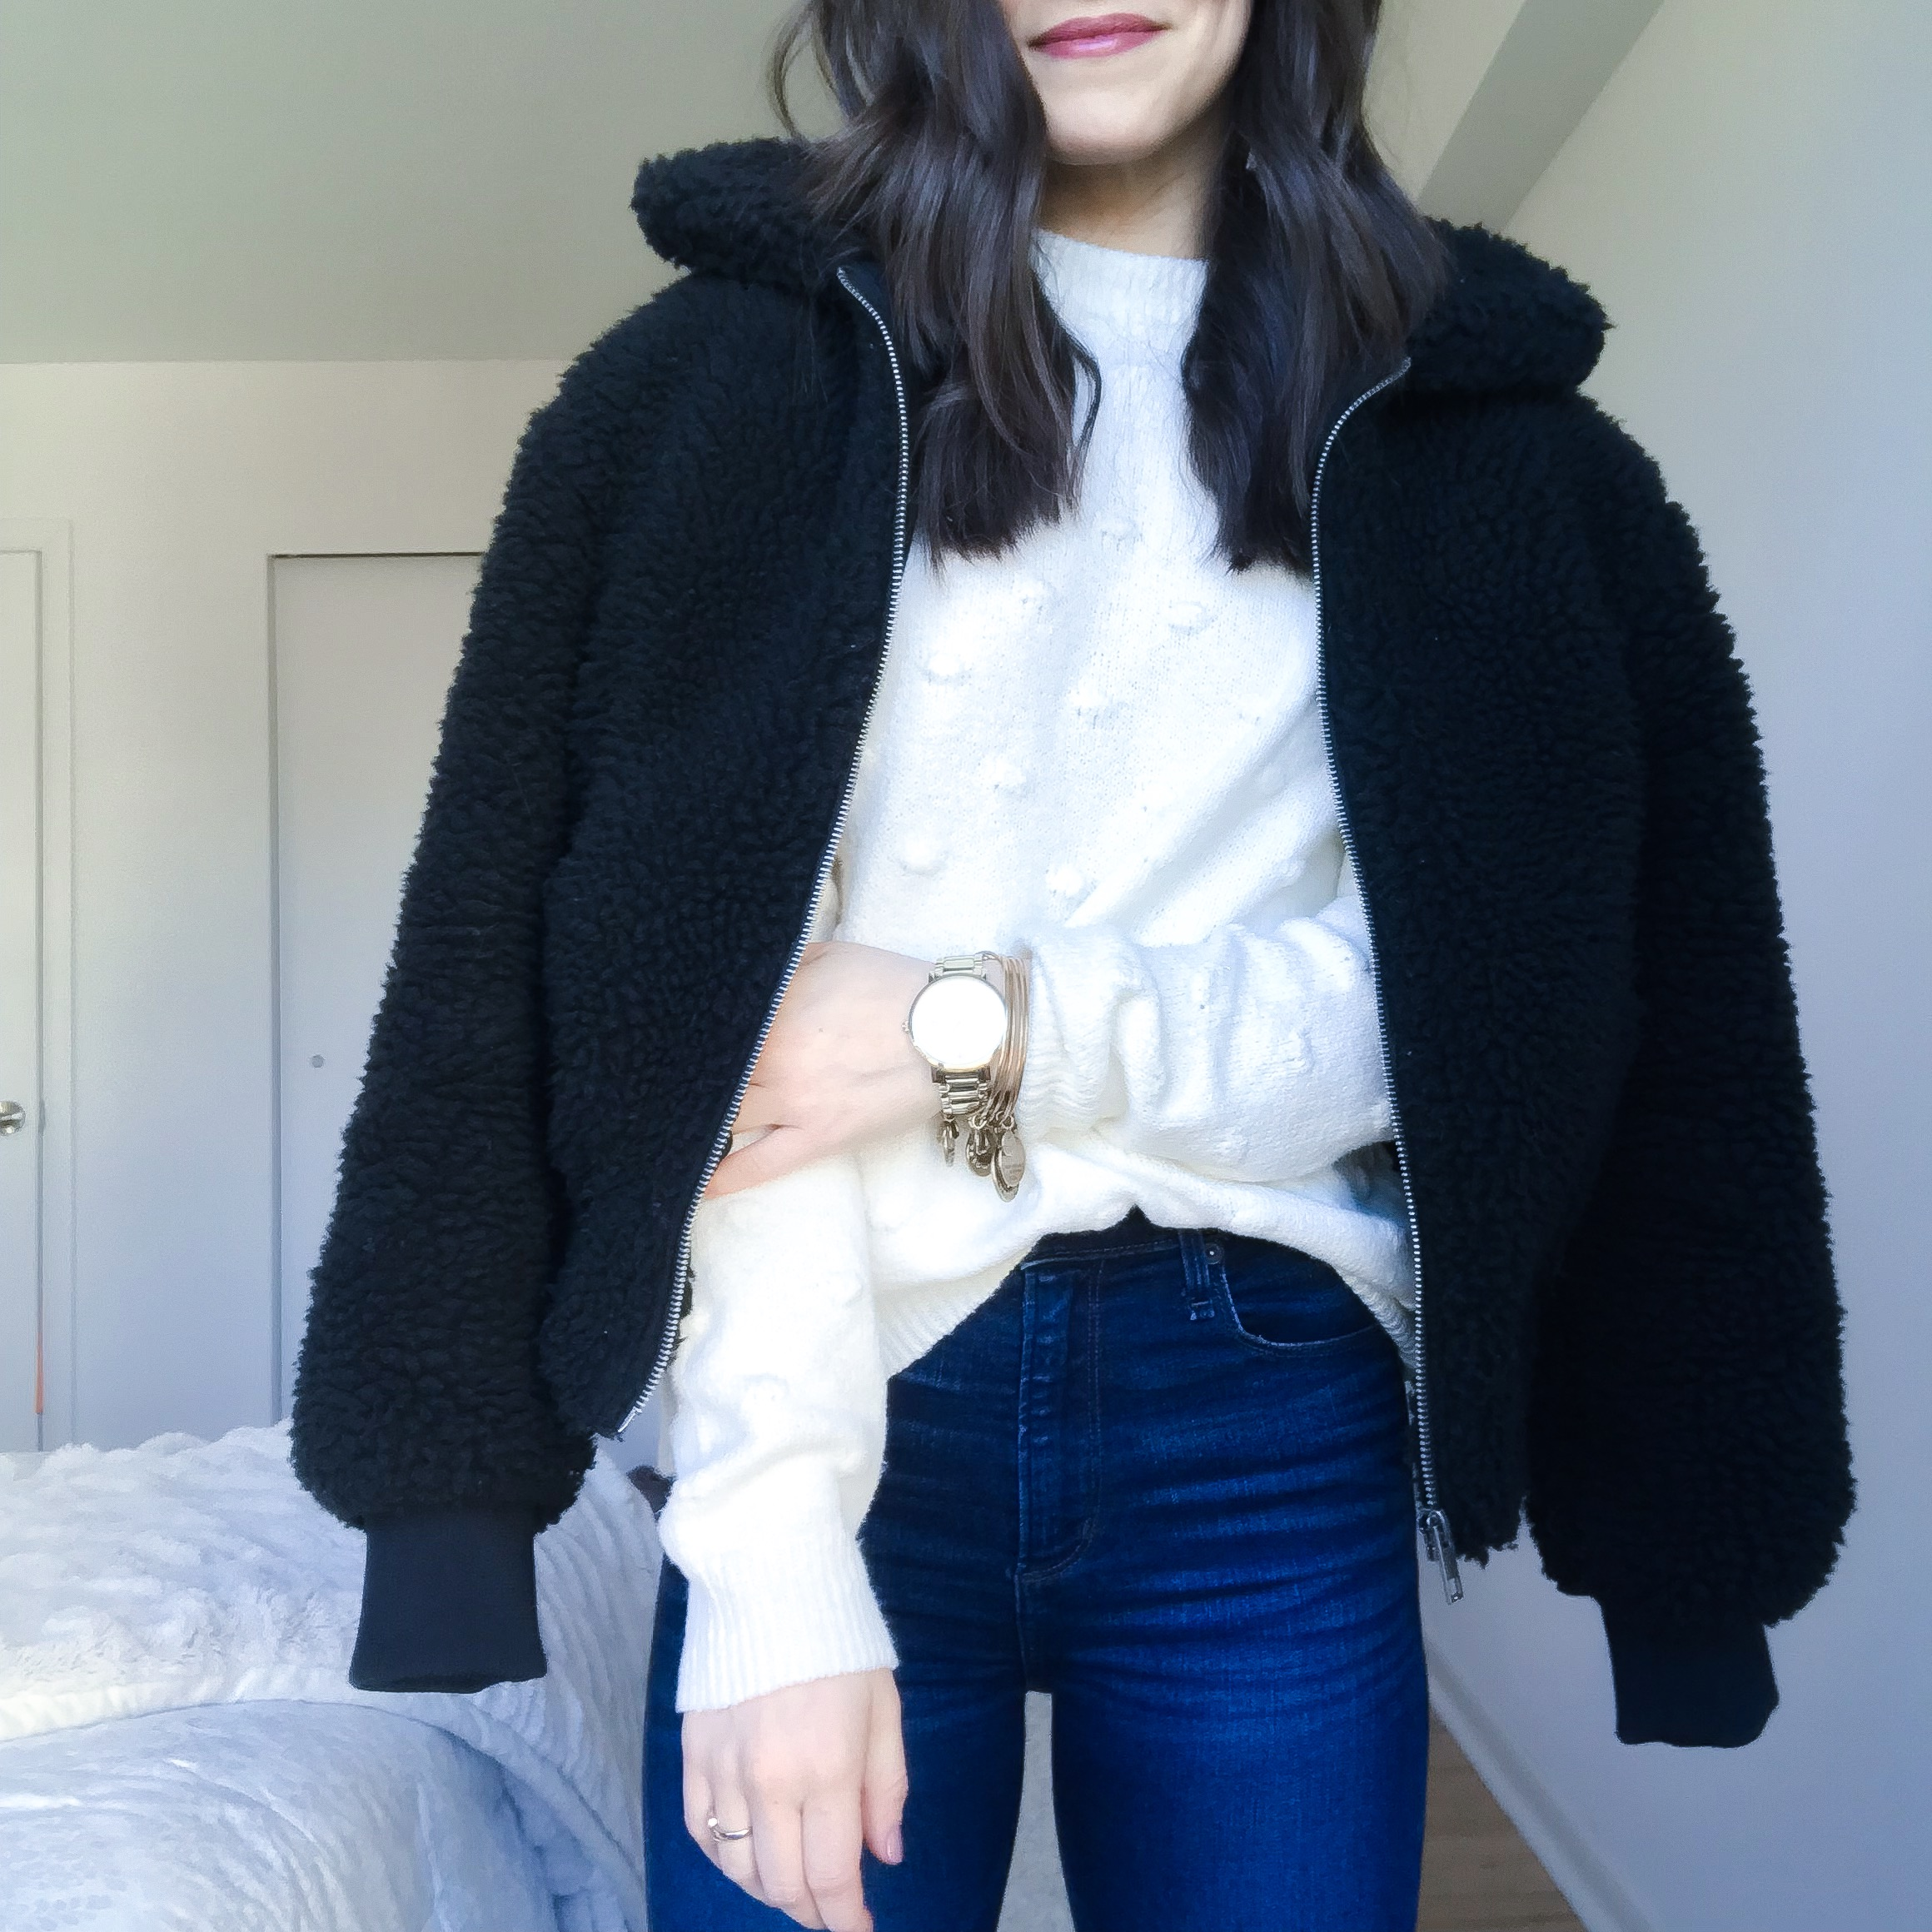 5 Must-Have Winter Wardrobe Essentials -- The Life She Wanders